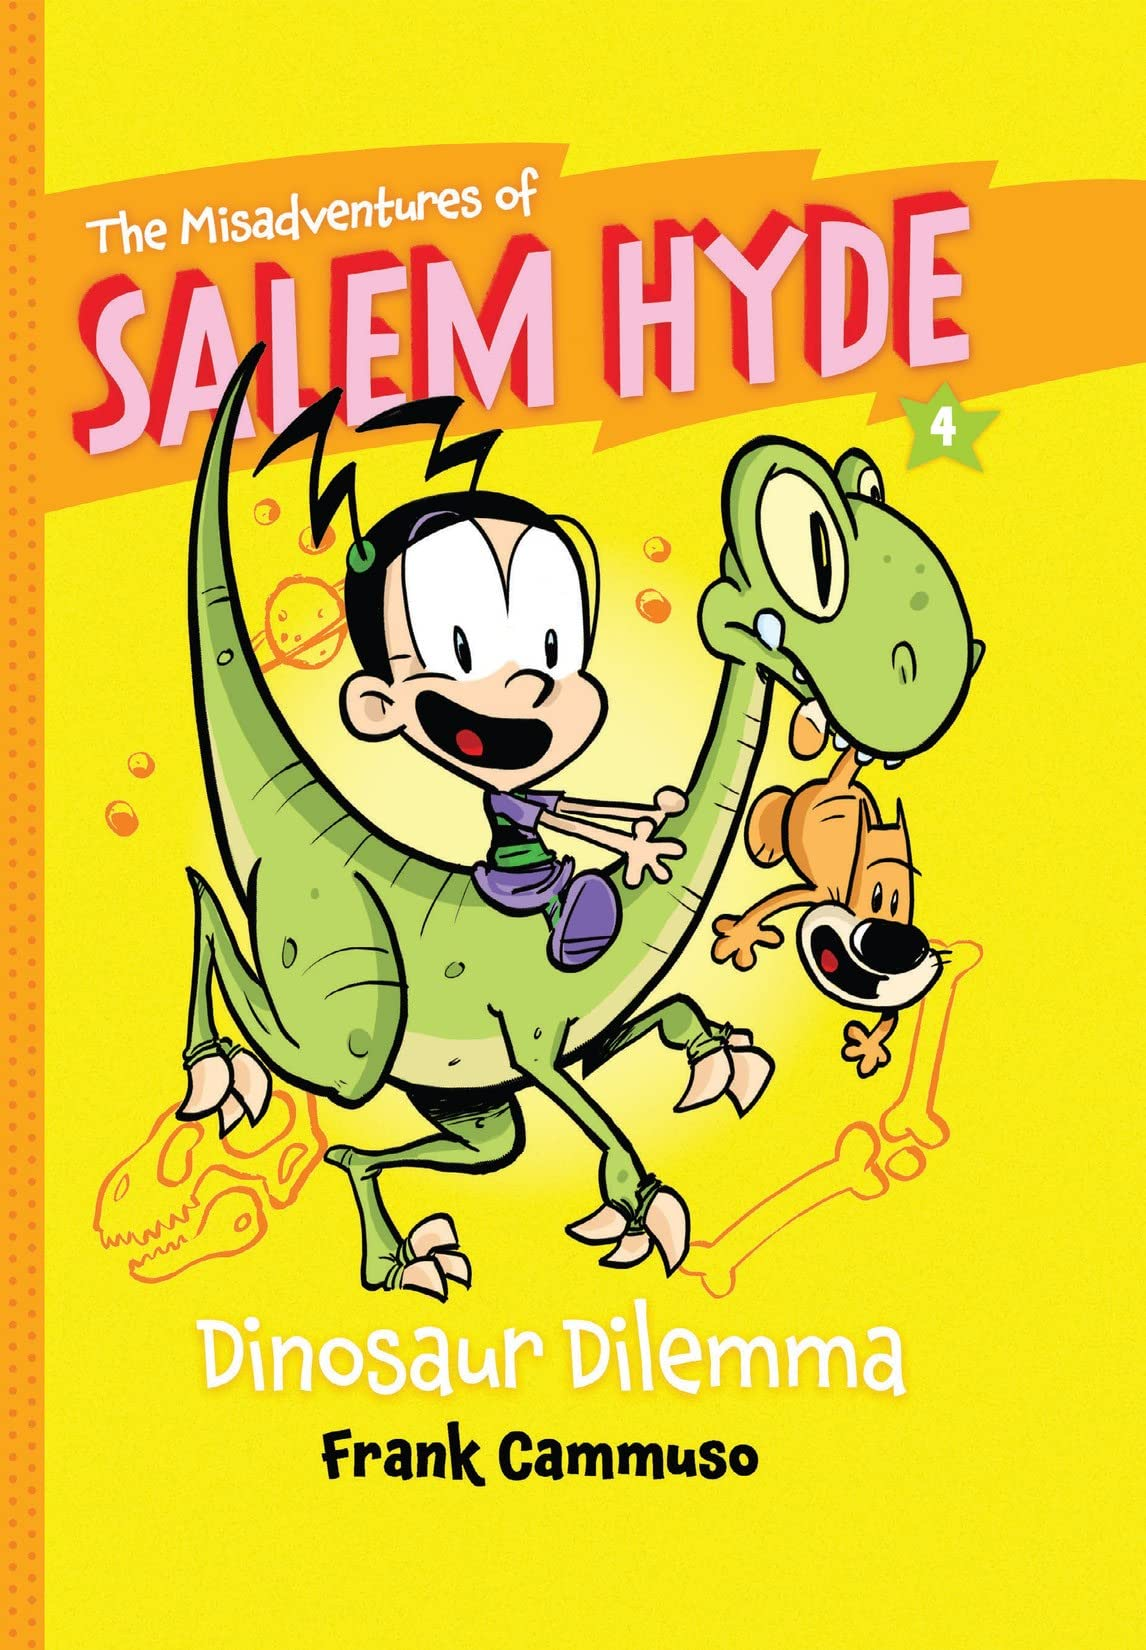 The Misadventures of Salem Hyde: Book Four - Dinosaur Dilemma